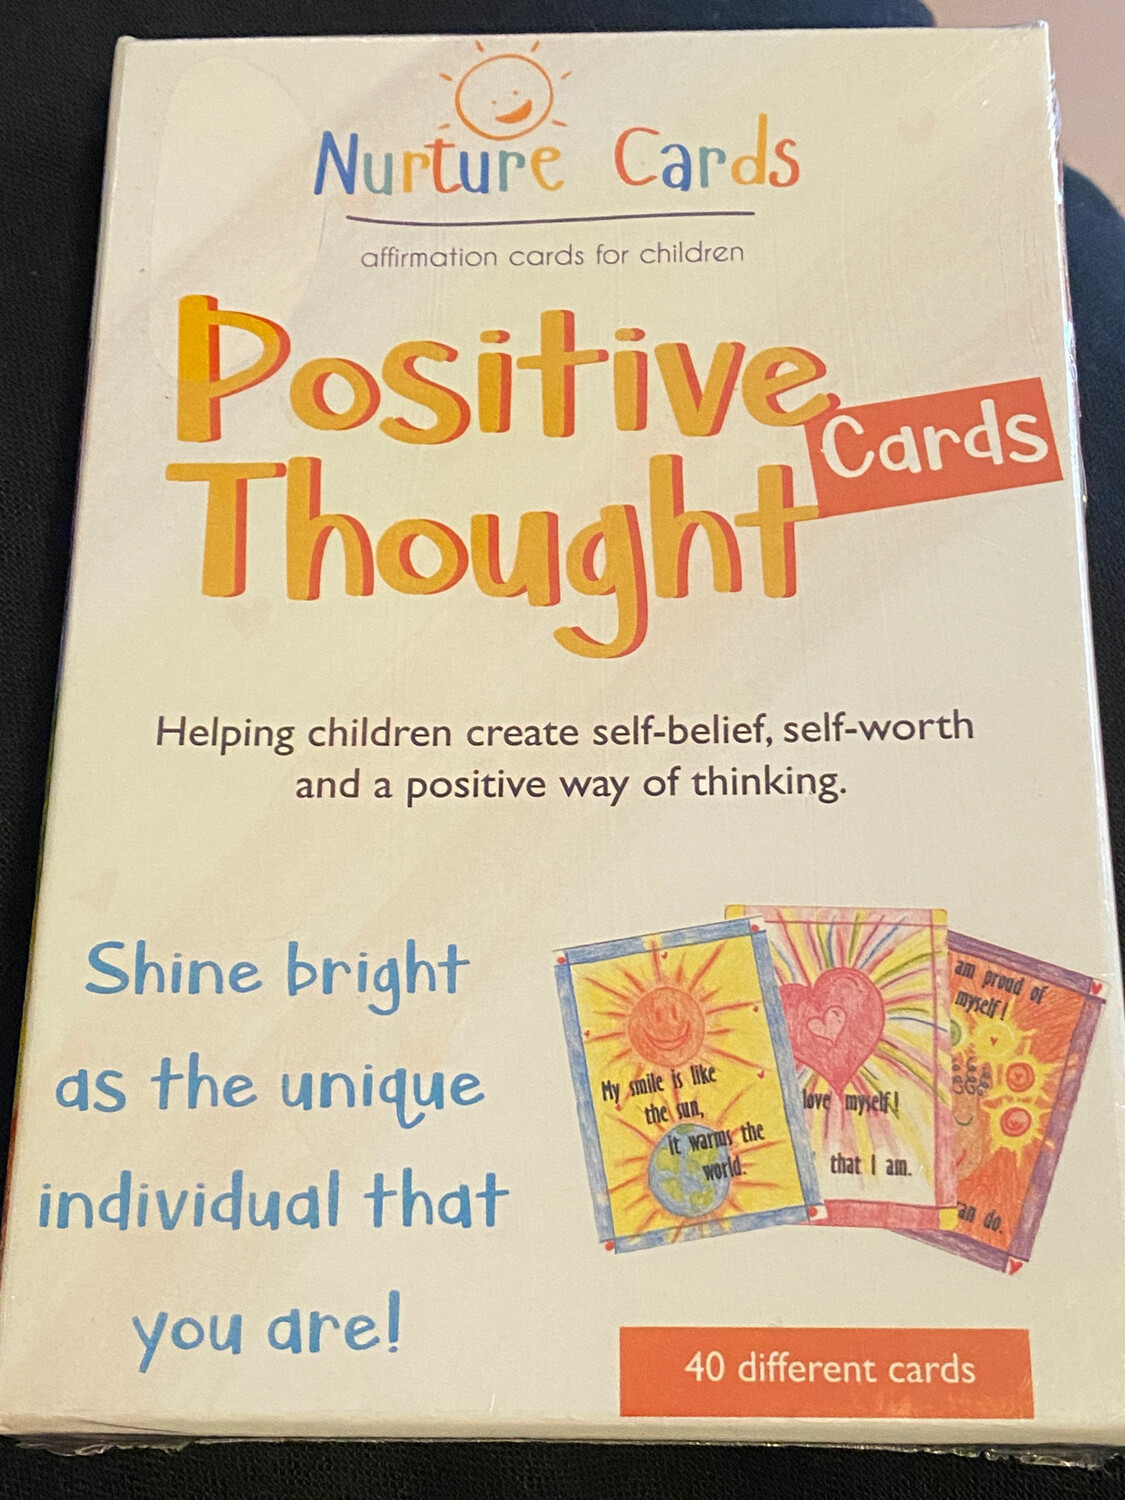 Positive Thought Cards: Affirmation Cards for Children